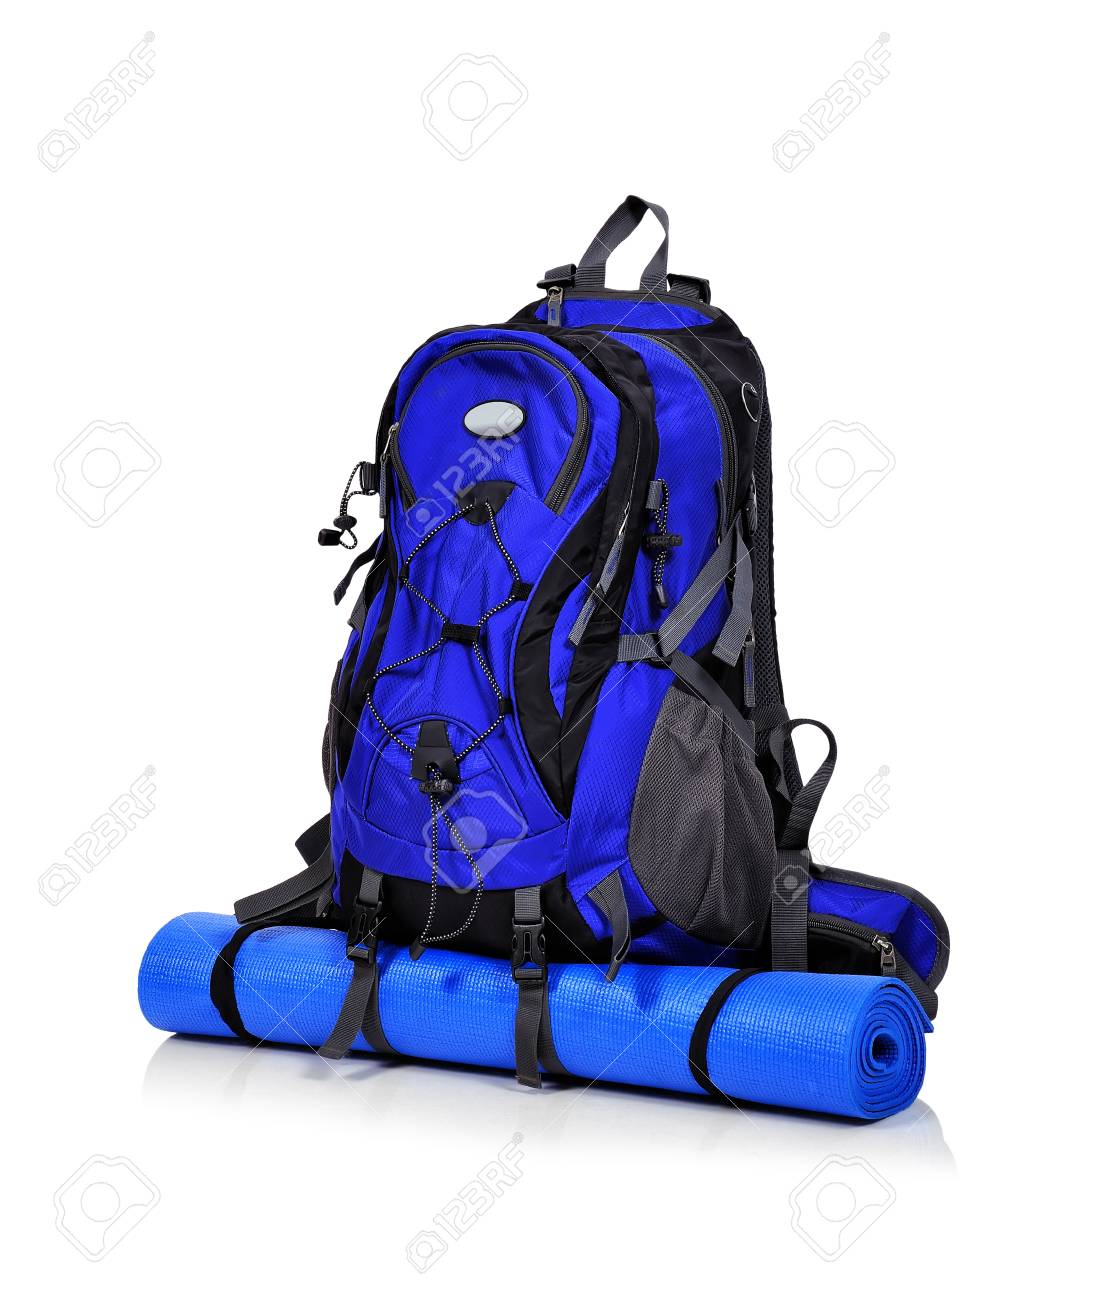 tourist backpack isolated on a white background Stock Photo - 34583045 280f05fc44f38